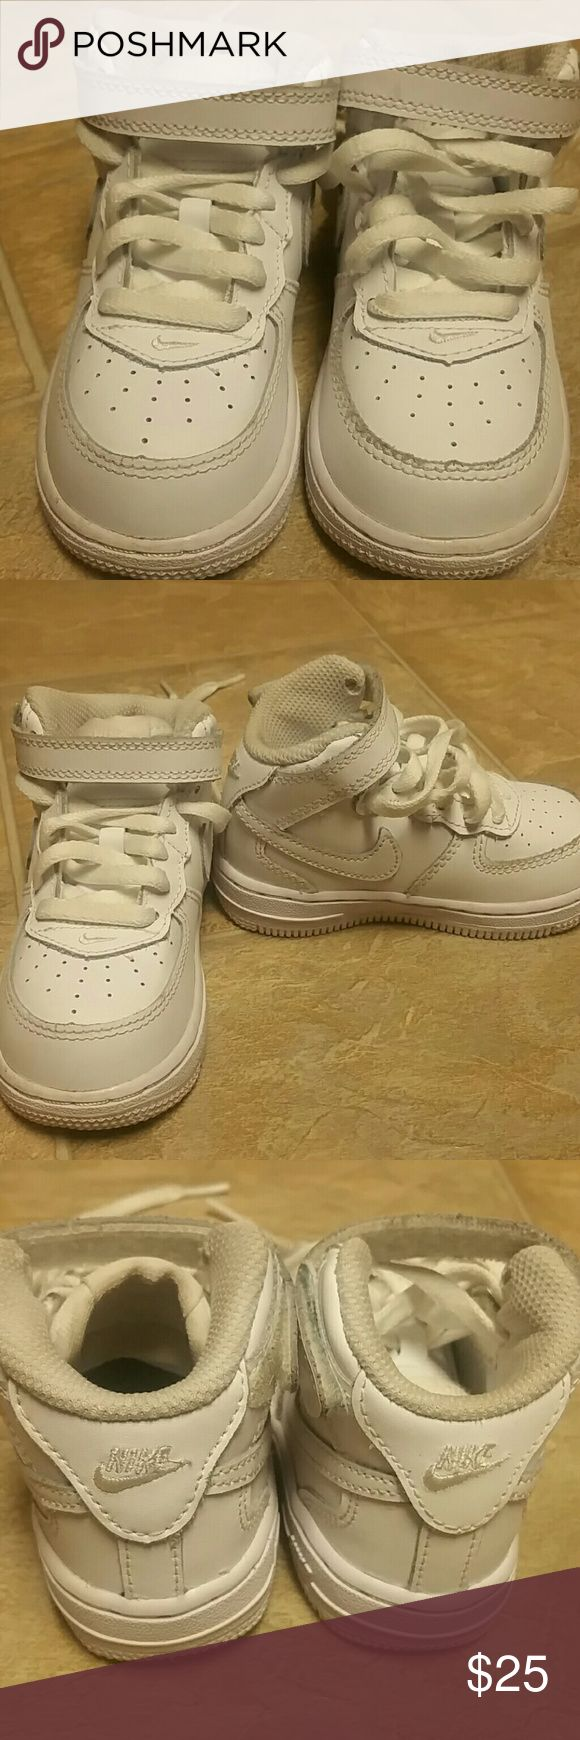 Baby toddler shoes Nike White air force one sz 6 Baby\toddler white air force one's sz 6  mid top Nike Shoes Sneakers